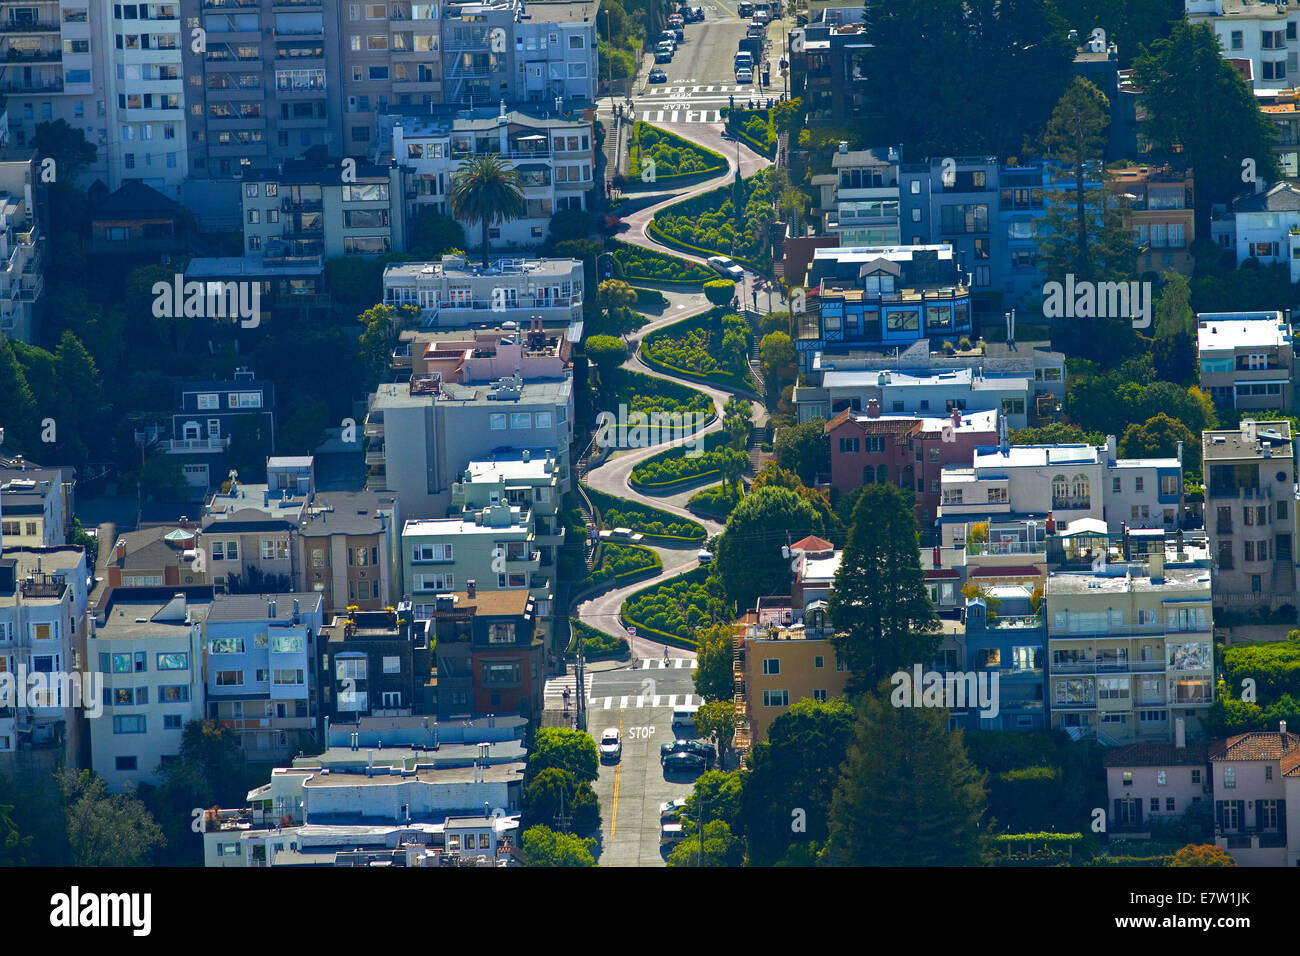 Lombard Street (claimed to be the world's crookedest street), Russian Hill neighborhood, San Francisco, California, - Stock Image